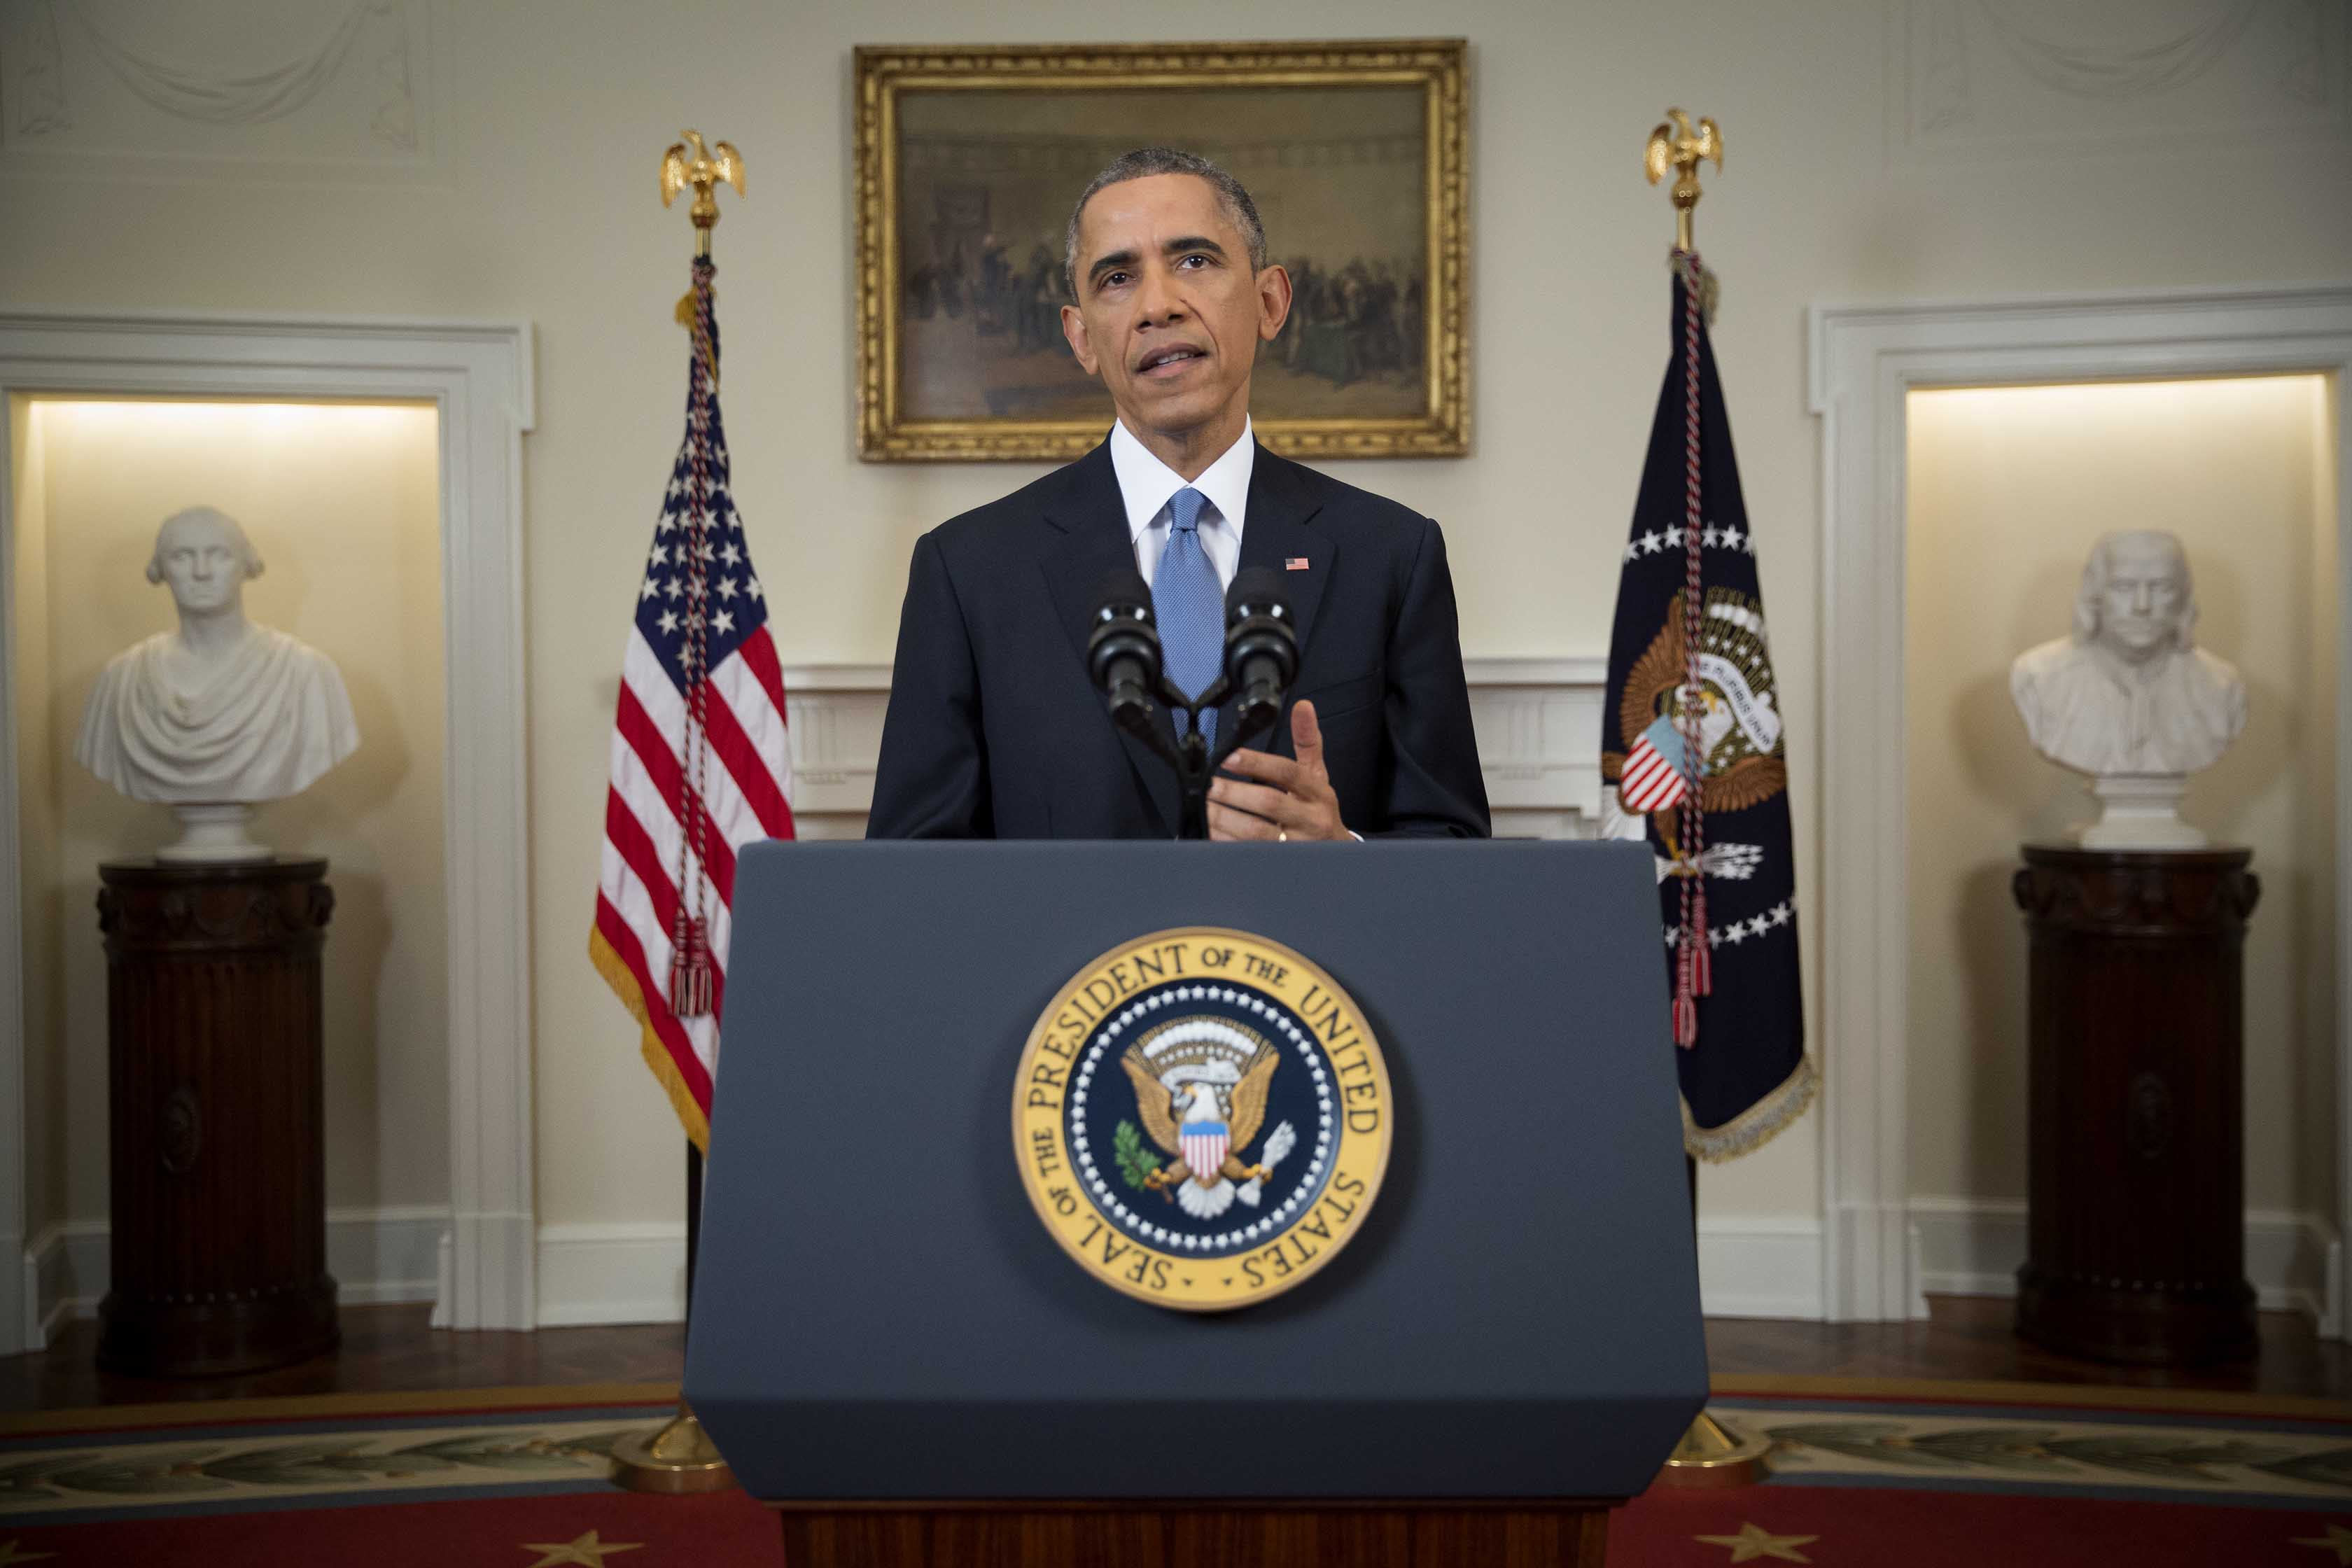 Obama acts boldly on Cuba, with eye on legacy